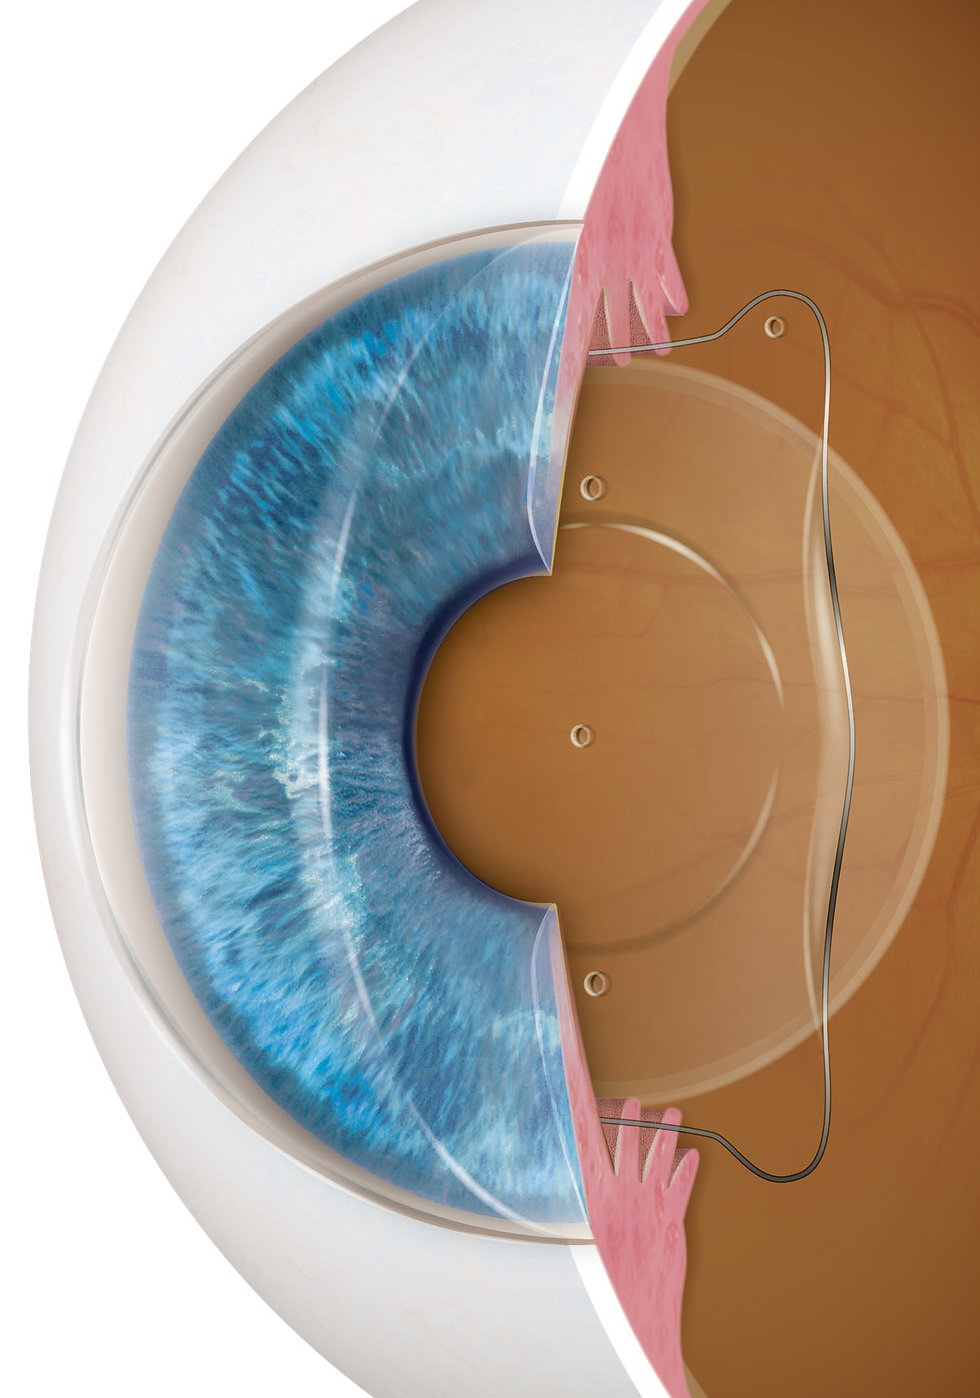 intraocular lens implant recovery time